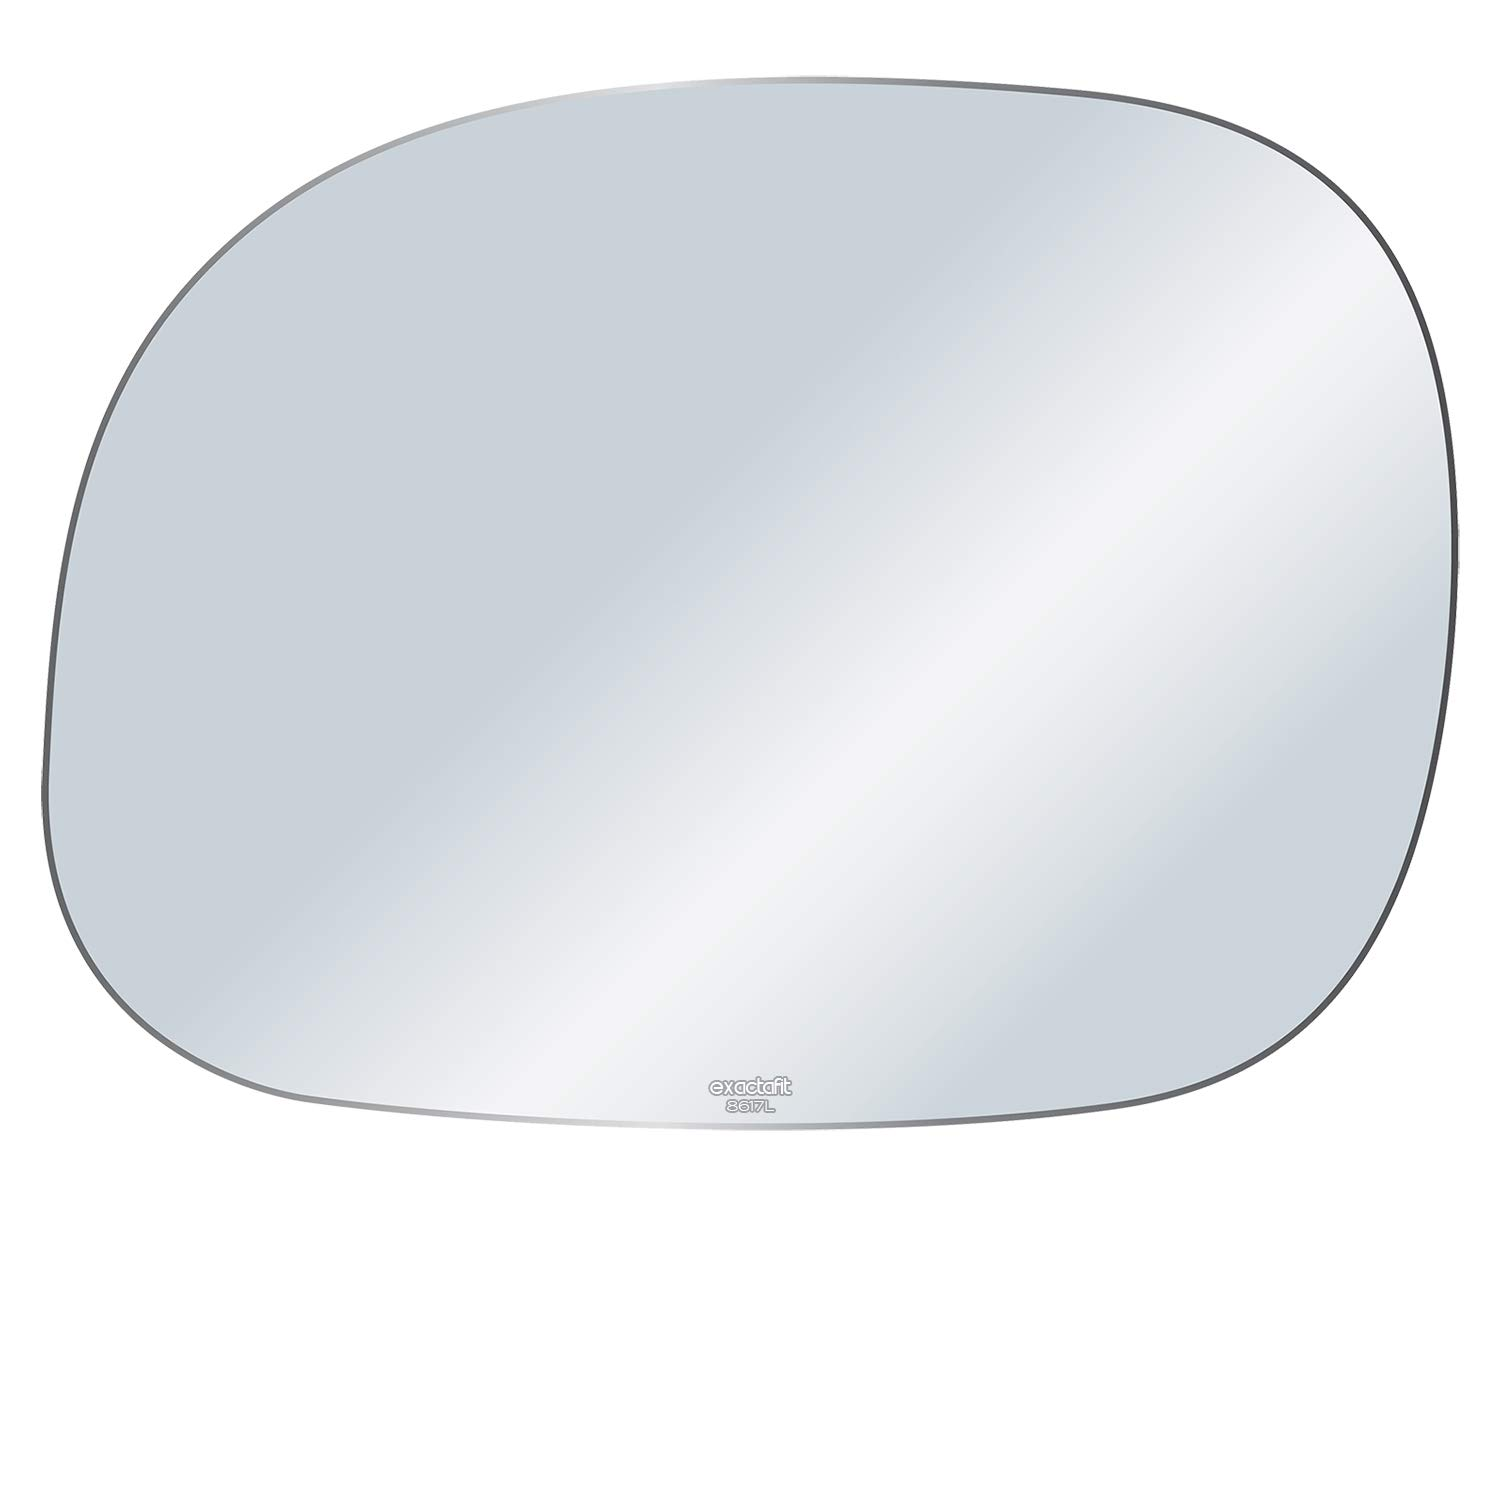 exactafit 8600R Right Passenger Side Mirror Replacement Glass Ford Truck Econoline Van Rugged TUFF